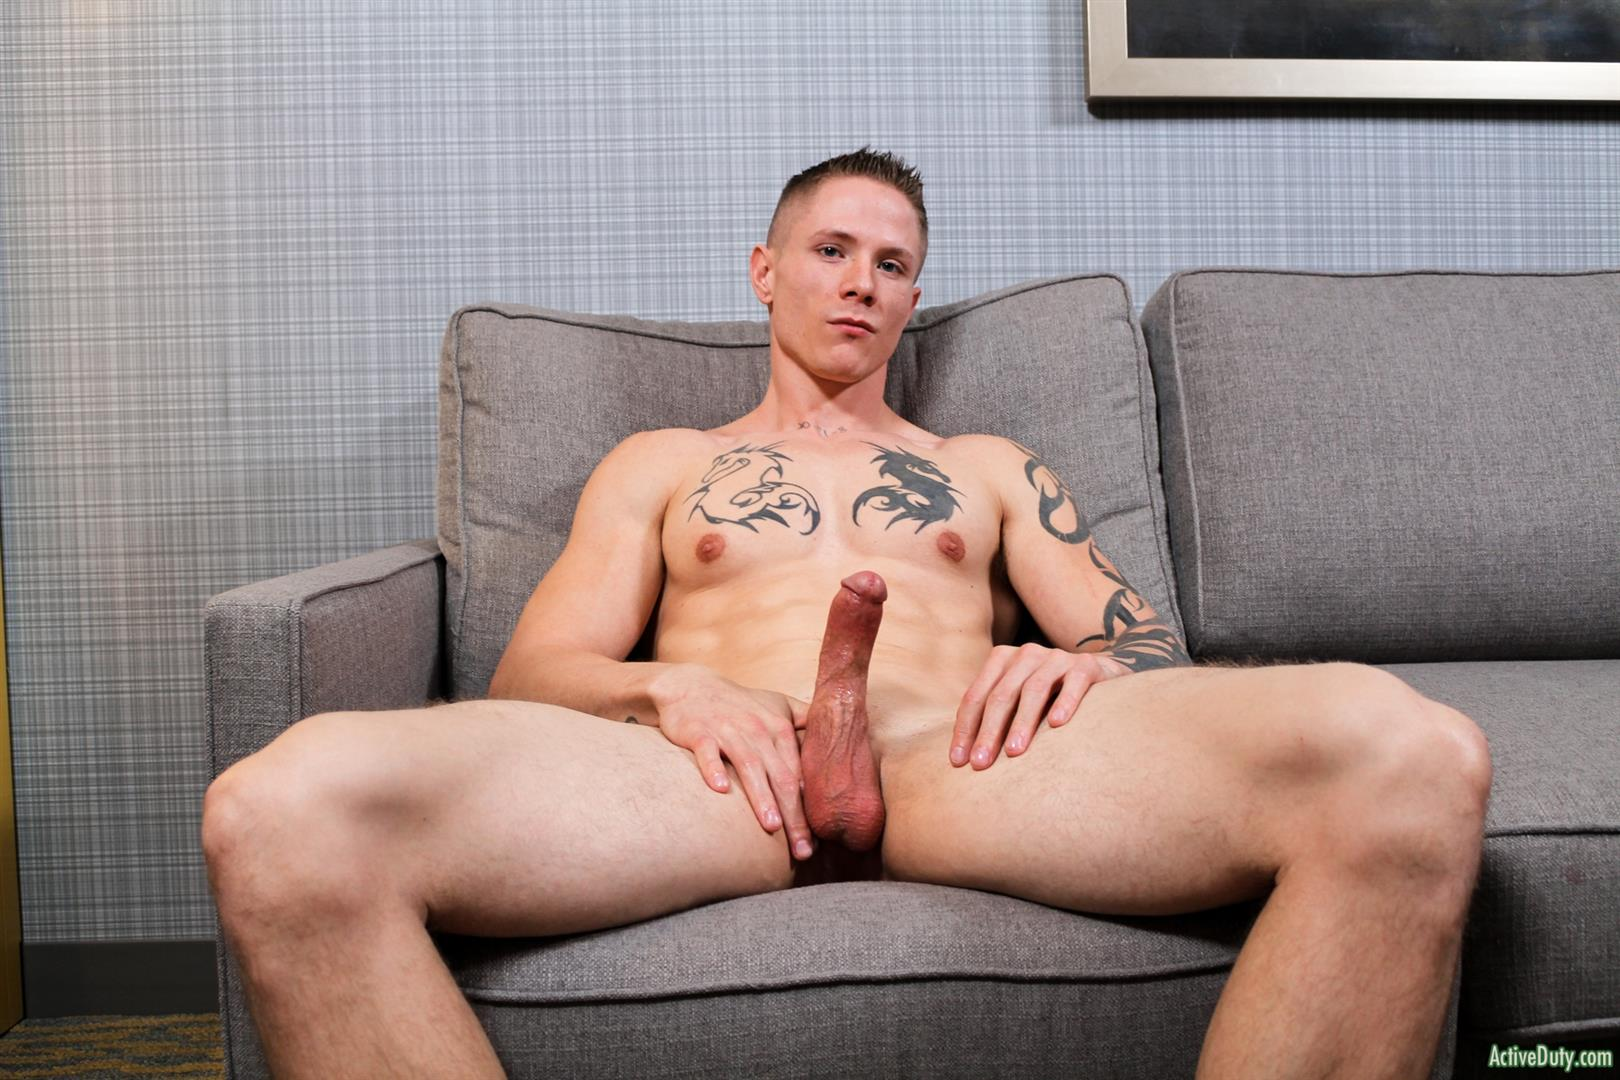 ActiveDuty Guy Houston Naked Army Guy Jerking Off Amateur Gay Porn 08 Straight Army Soldier Auditions For Gay Porn And Blows A Load